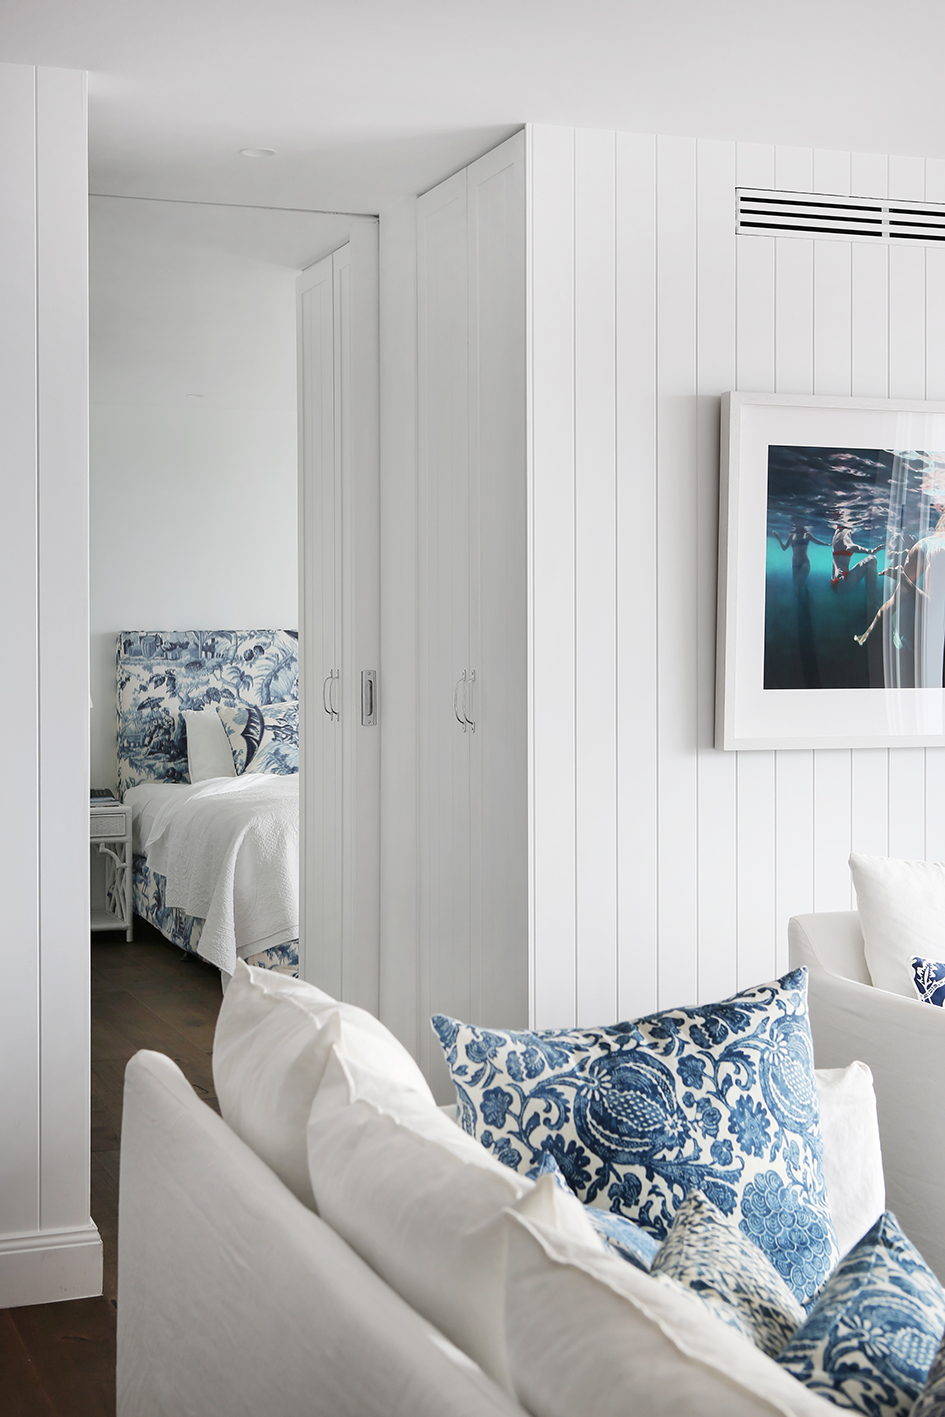 Collette Dinnigan Launches Amazing Penthouses At Bannisters By The Sea